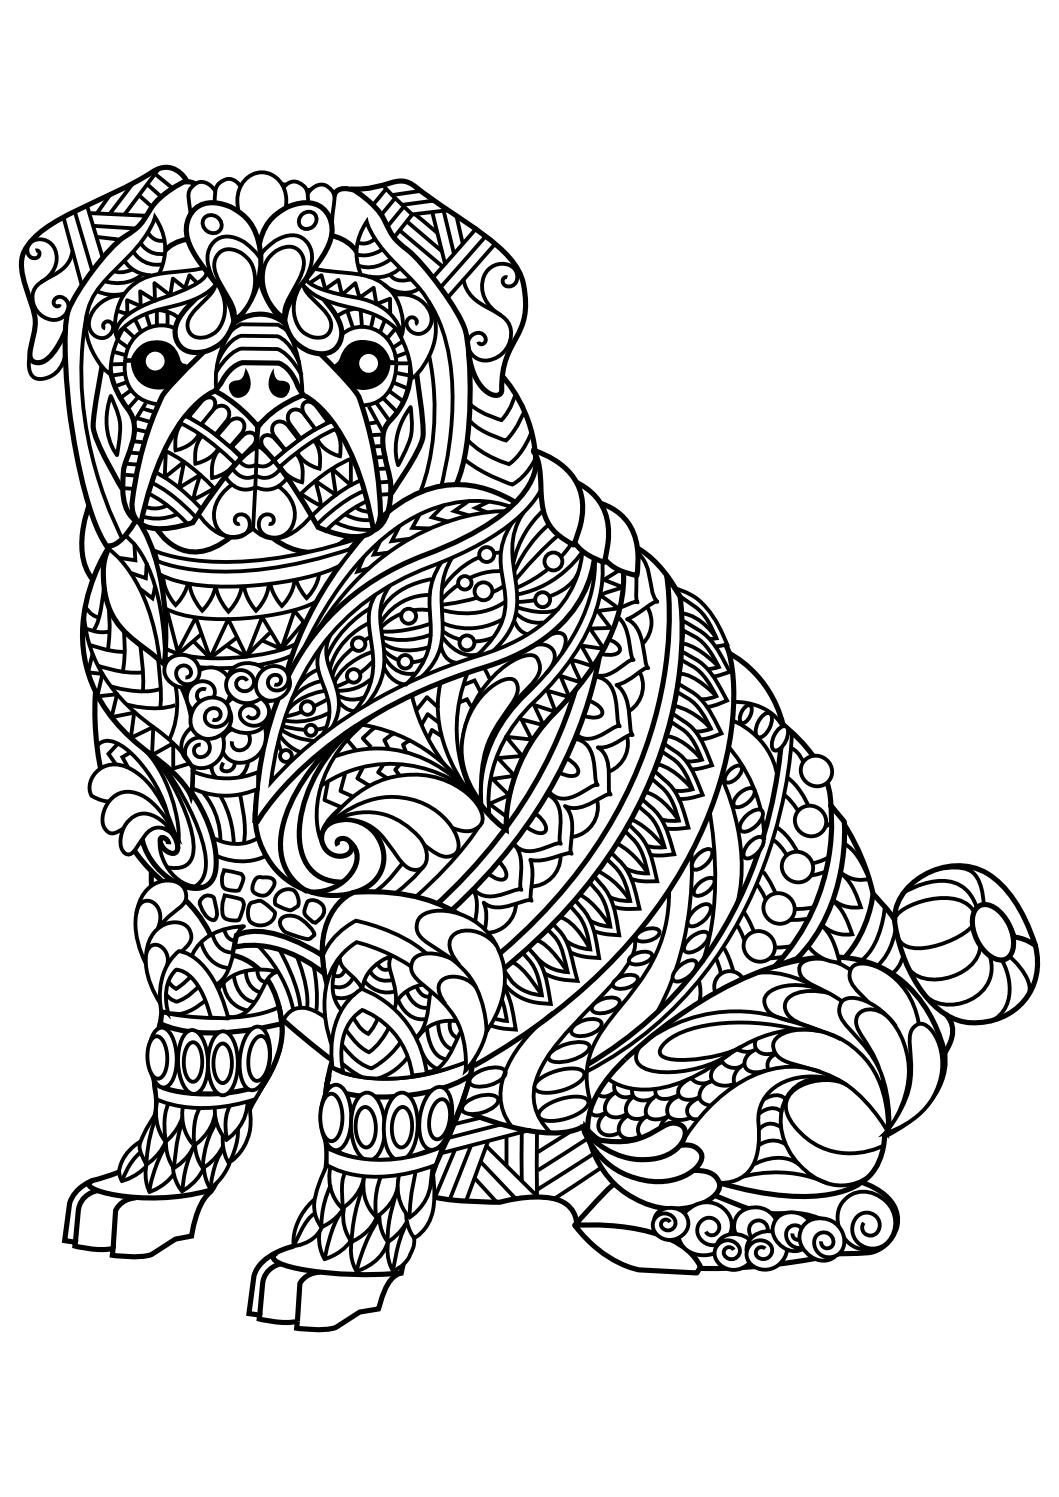 Animal coloring pages pdf Coloring Animals Pinterest Coloring pages, Adult coloring ...